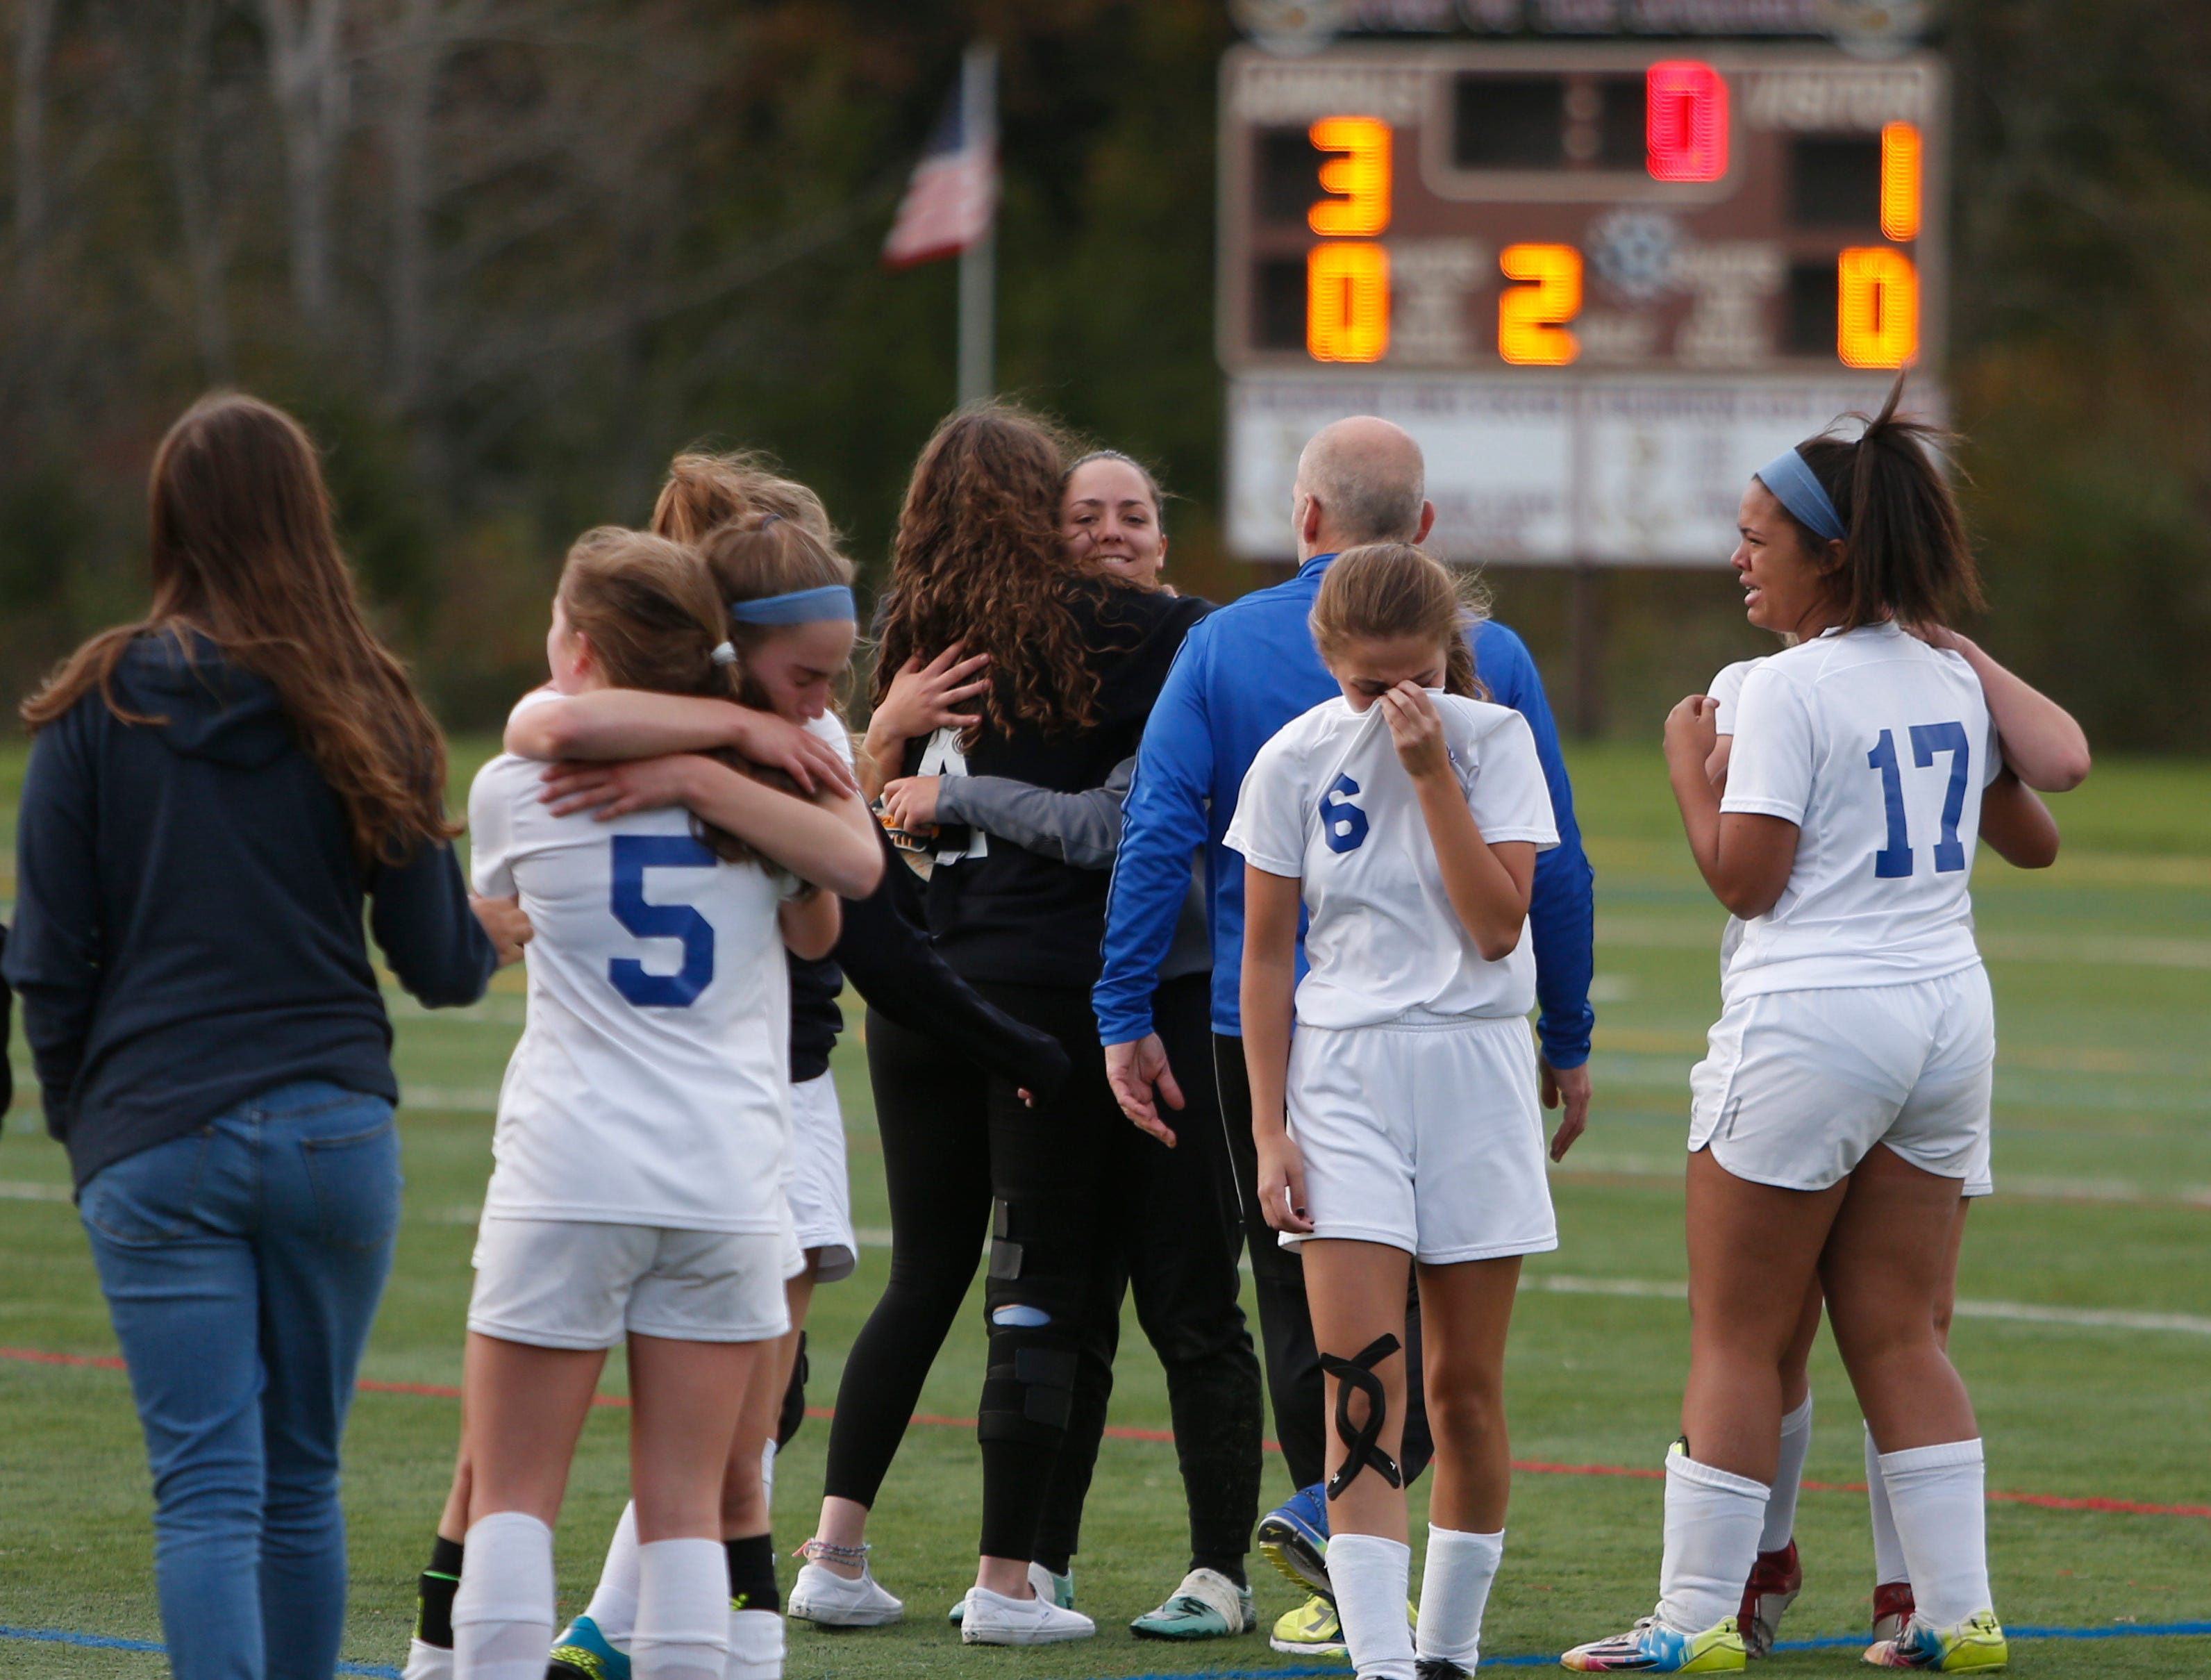 Millbrook's girls soccer team console each other following losing in Wednesday's Class C regional semifinal versus Haldane in Freedom Plains on October 31, 2018.